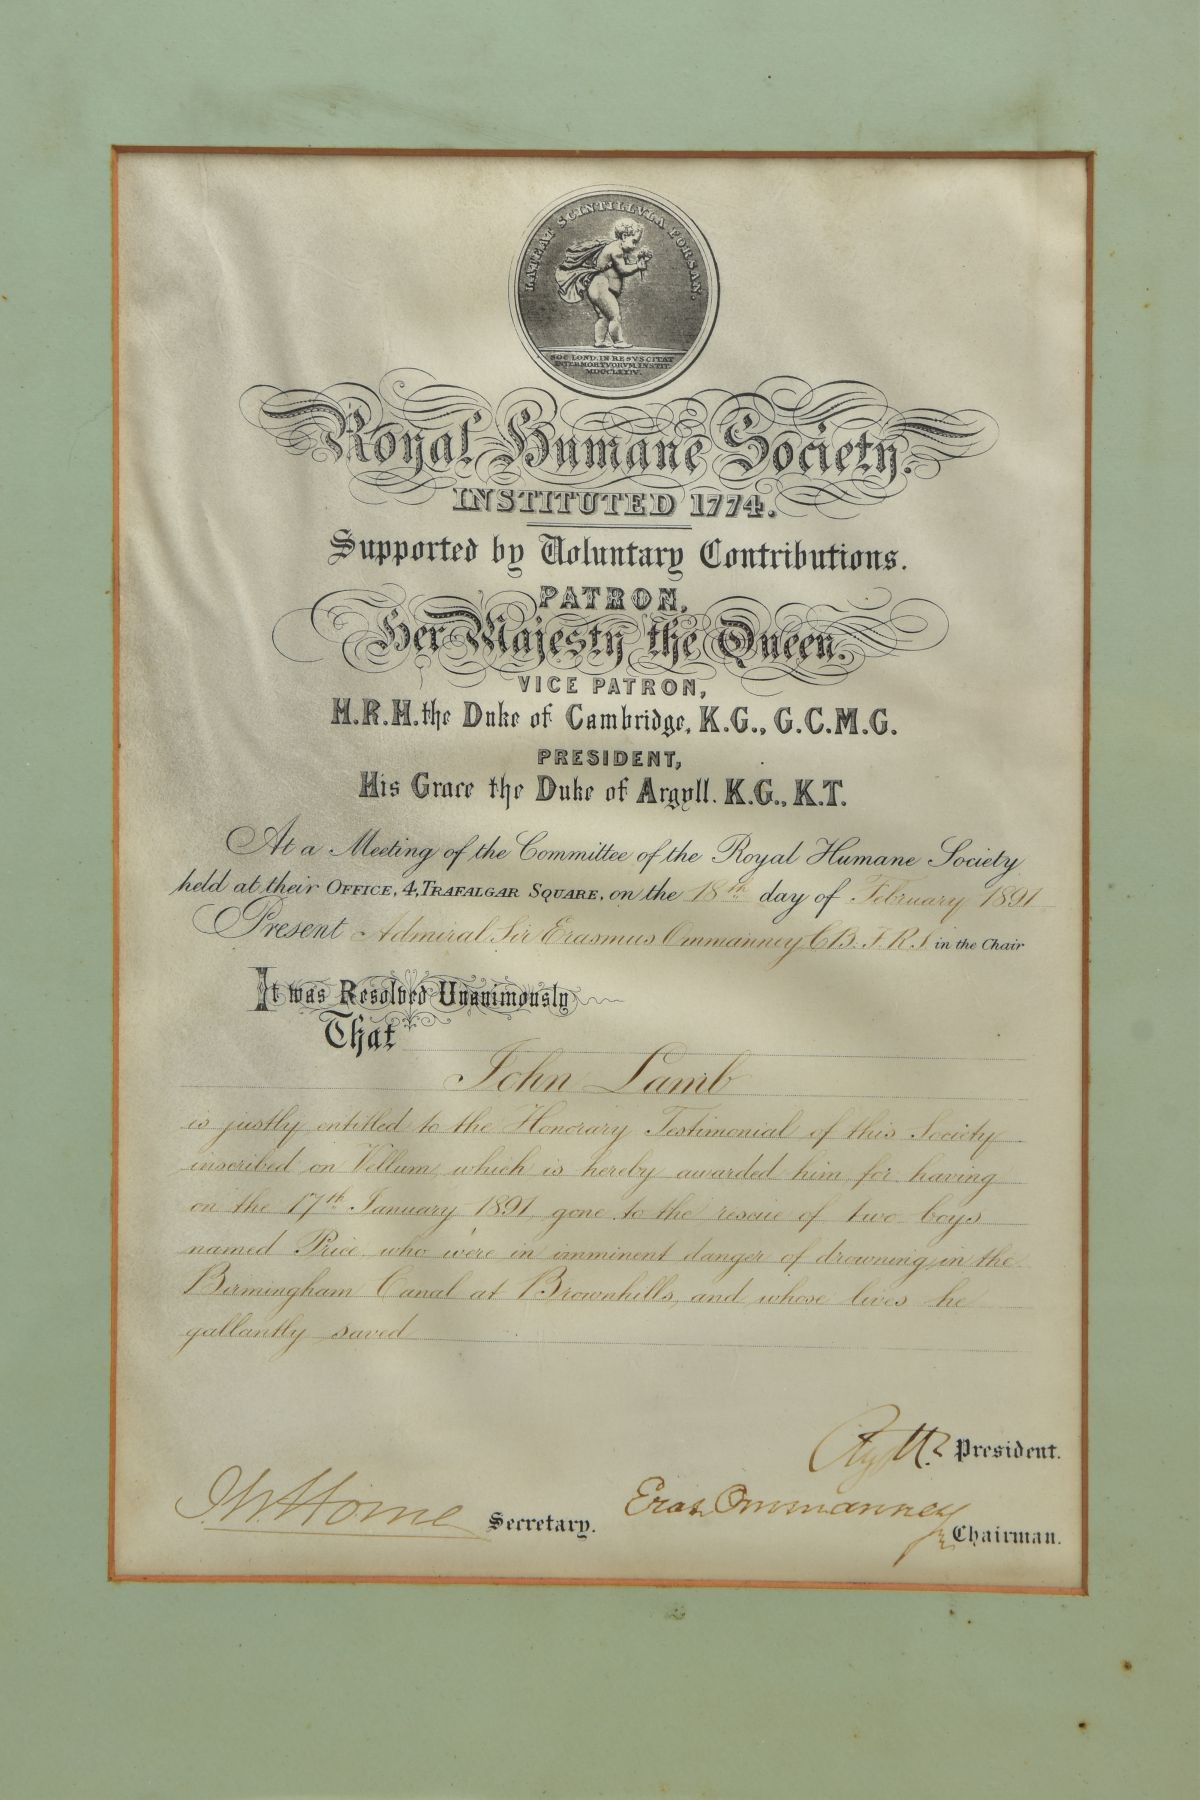 The certificate issued to John Lamb